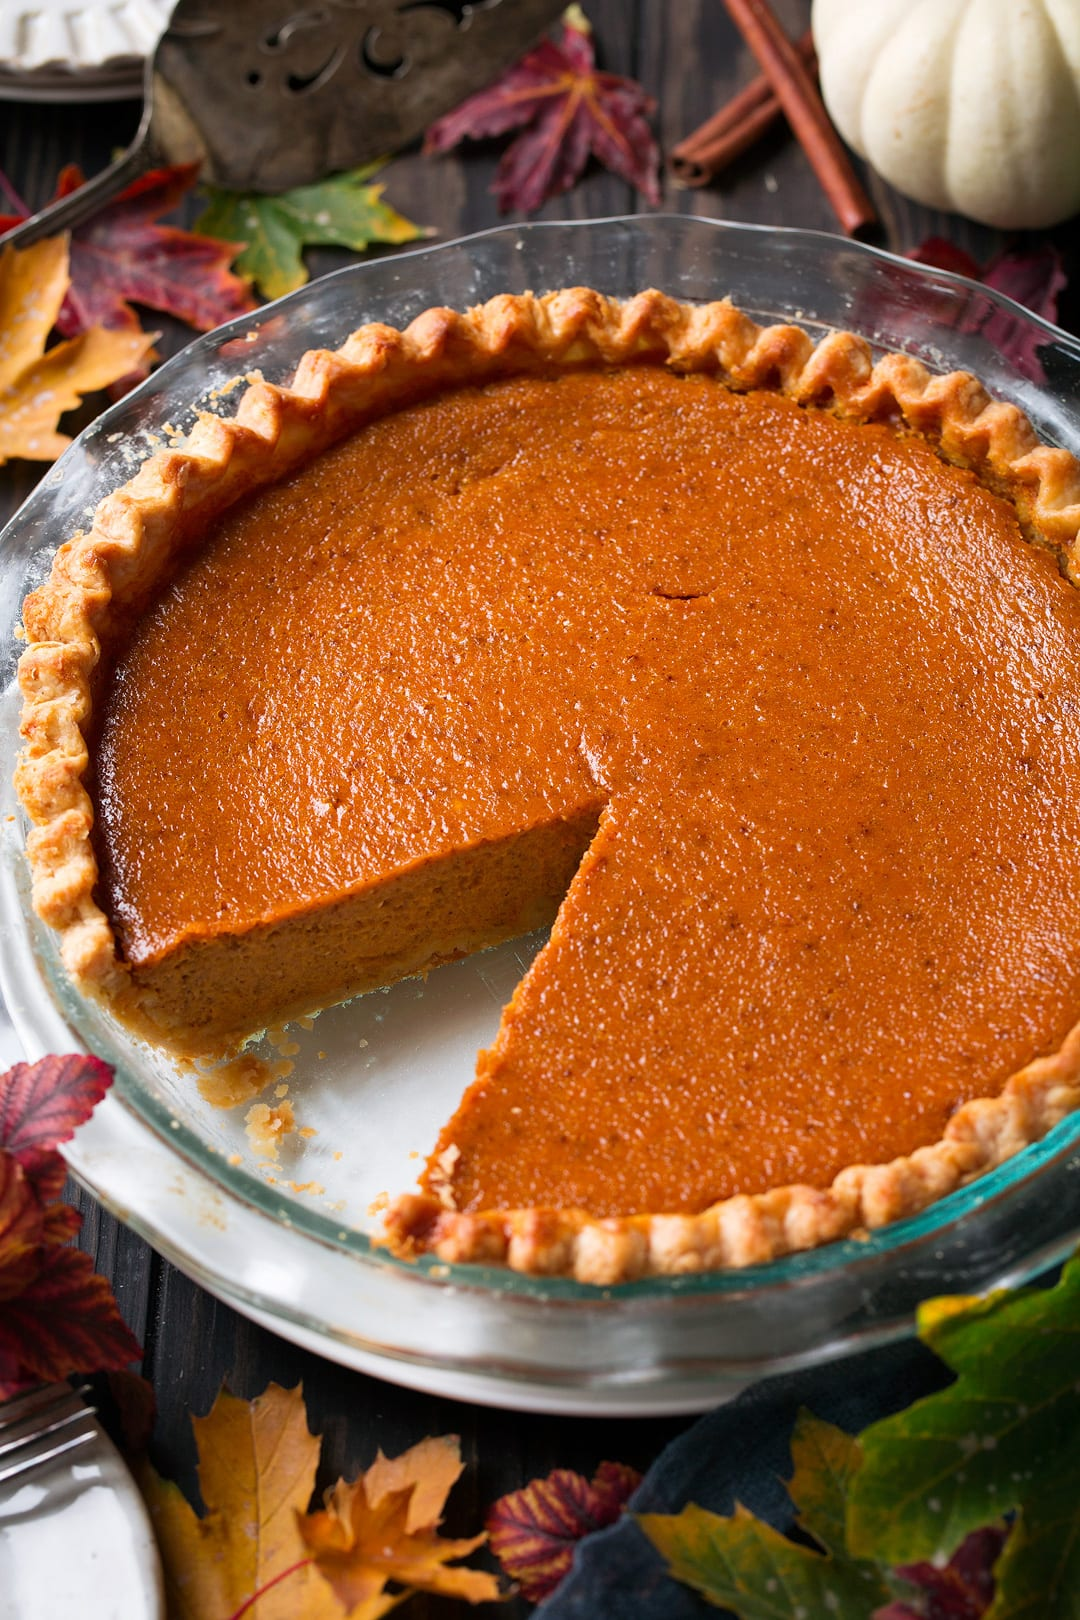 Pumpkin Pie with blind baked crust in a glass baking dish